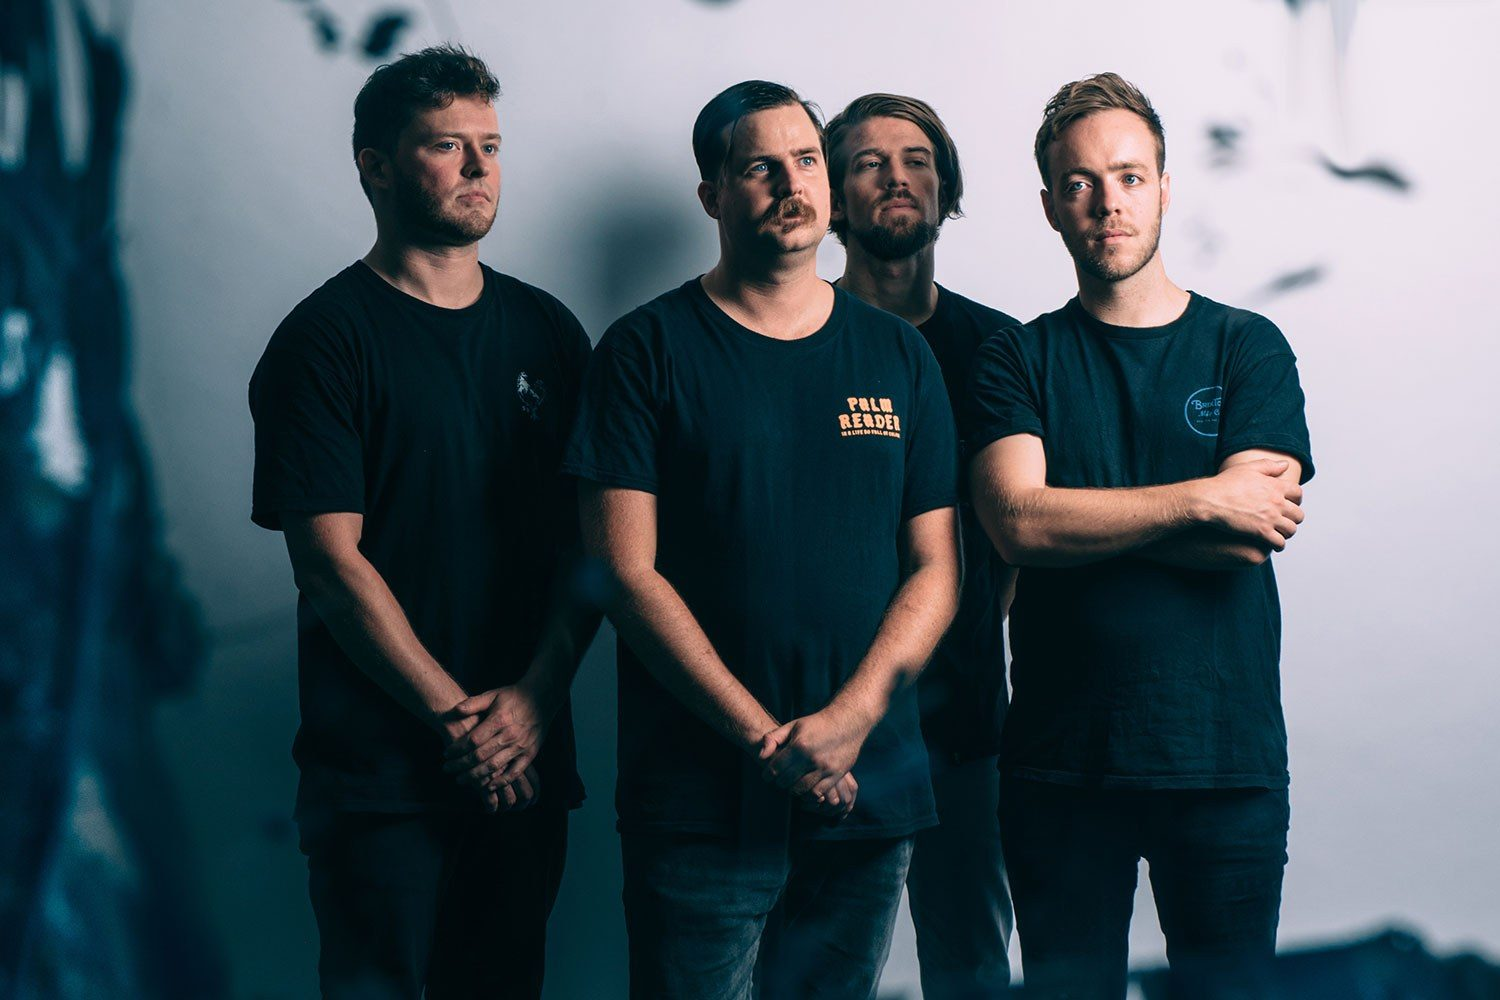 Black Peaks: Divide and conquer